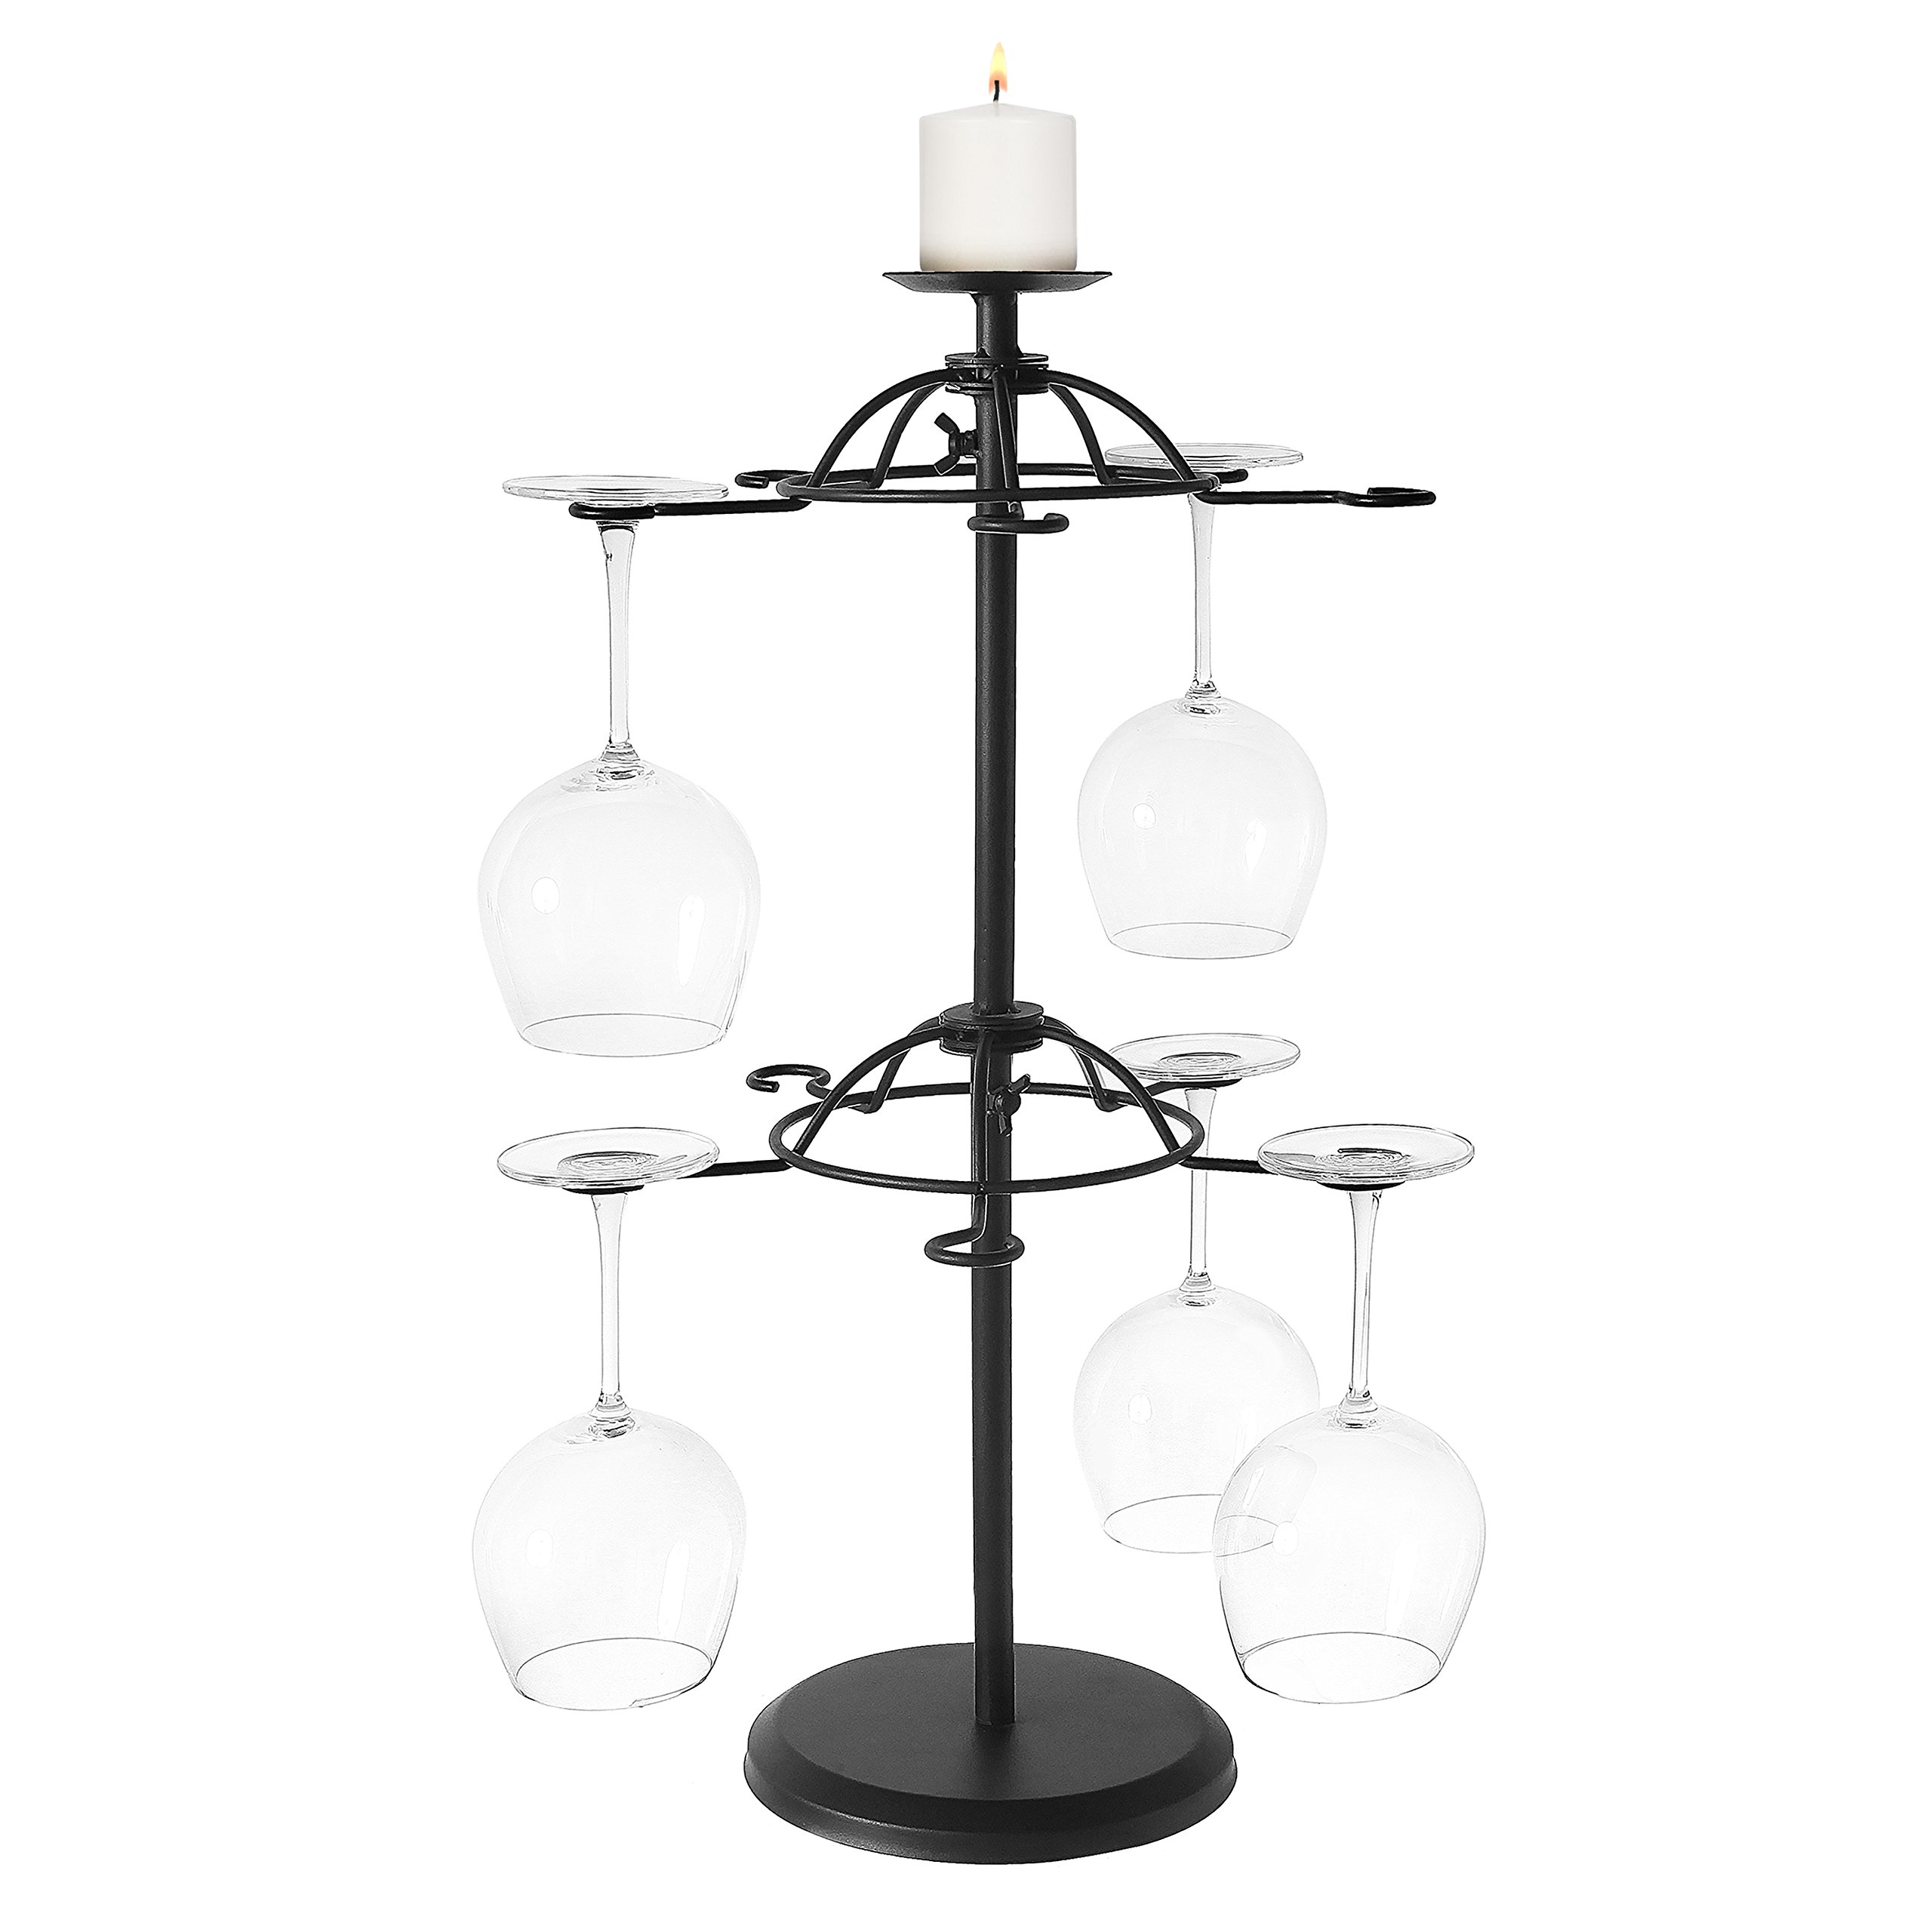 Rotating 2-Tier Modern Matte Black Metal Tabletop 10 Wine Glass Holder Rack with Candleholder